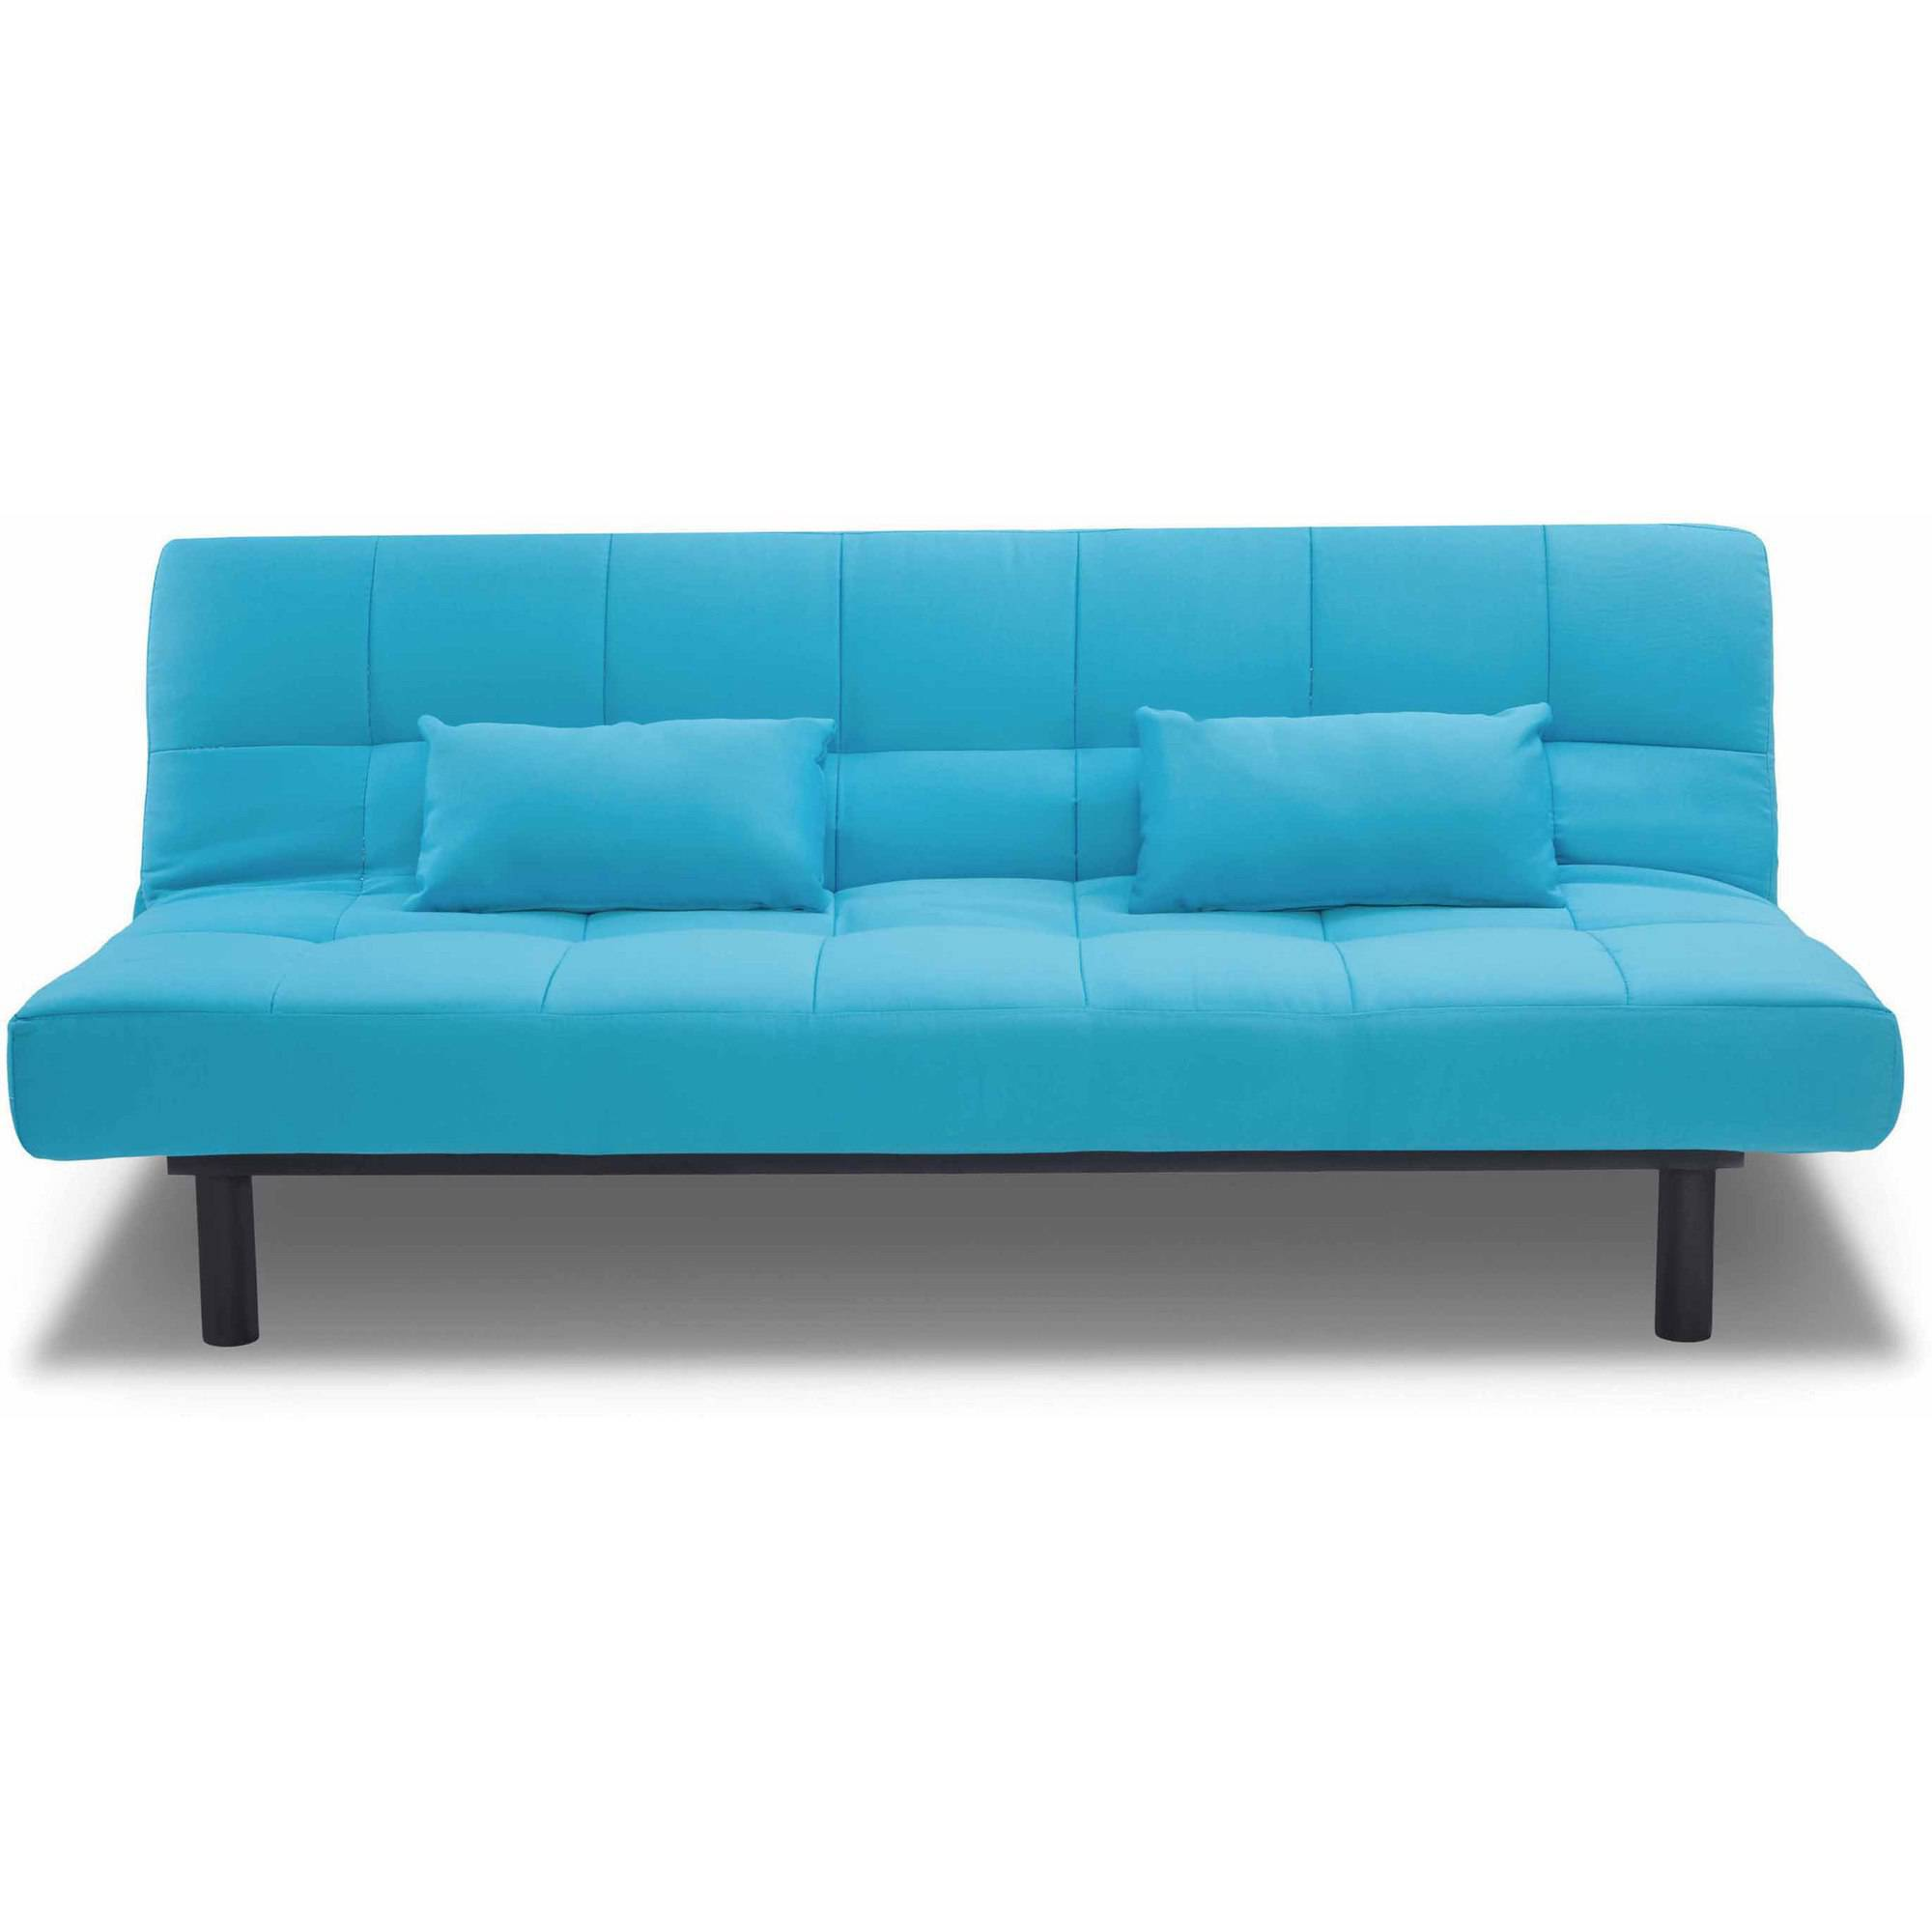 Serta St. Lucia Indoor/Outdoor Sofa Lounger - Walmart.com